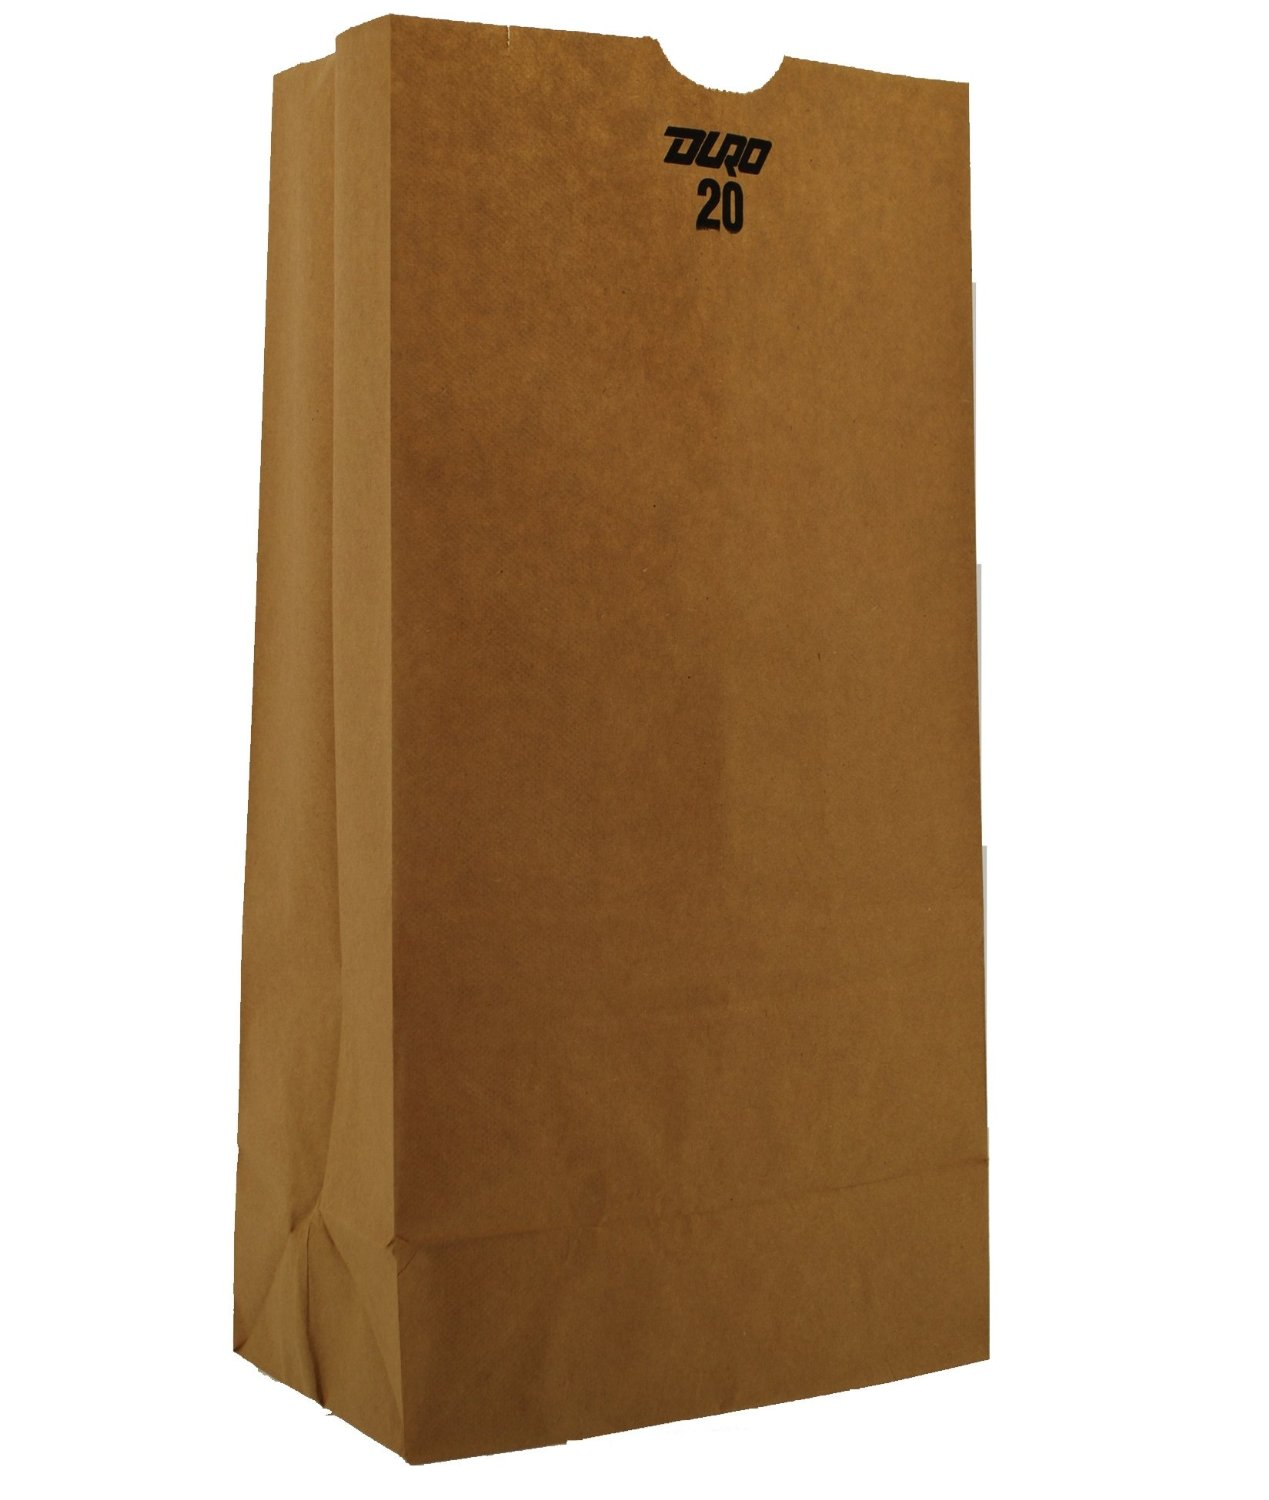 "20# Regular Natural 8.25"" x 5.31"" x 16.12"" Grocery Bags -"